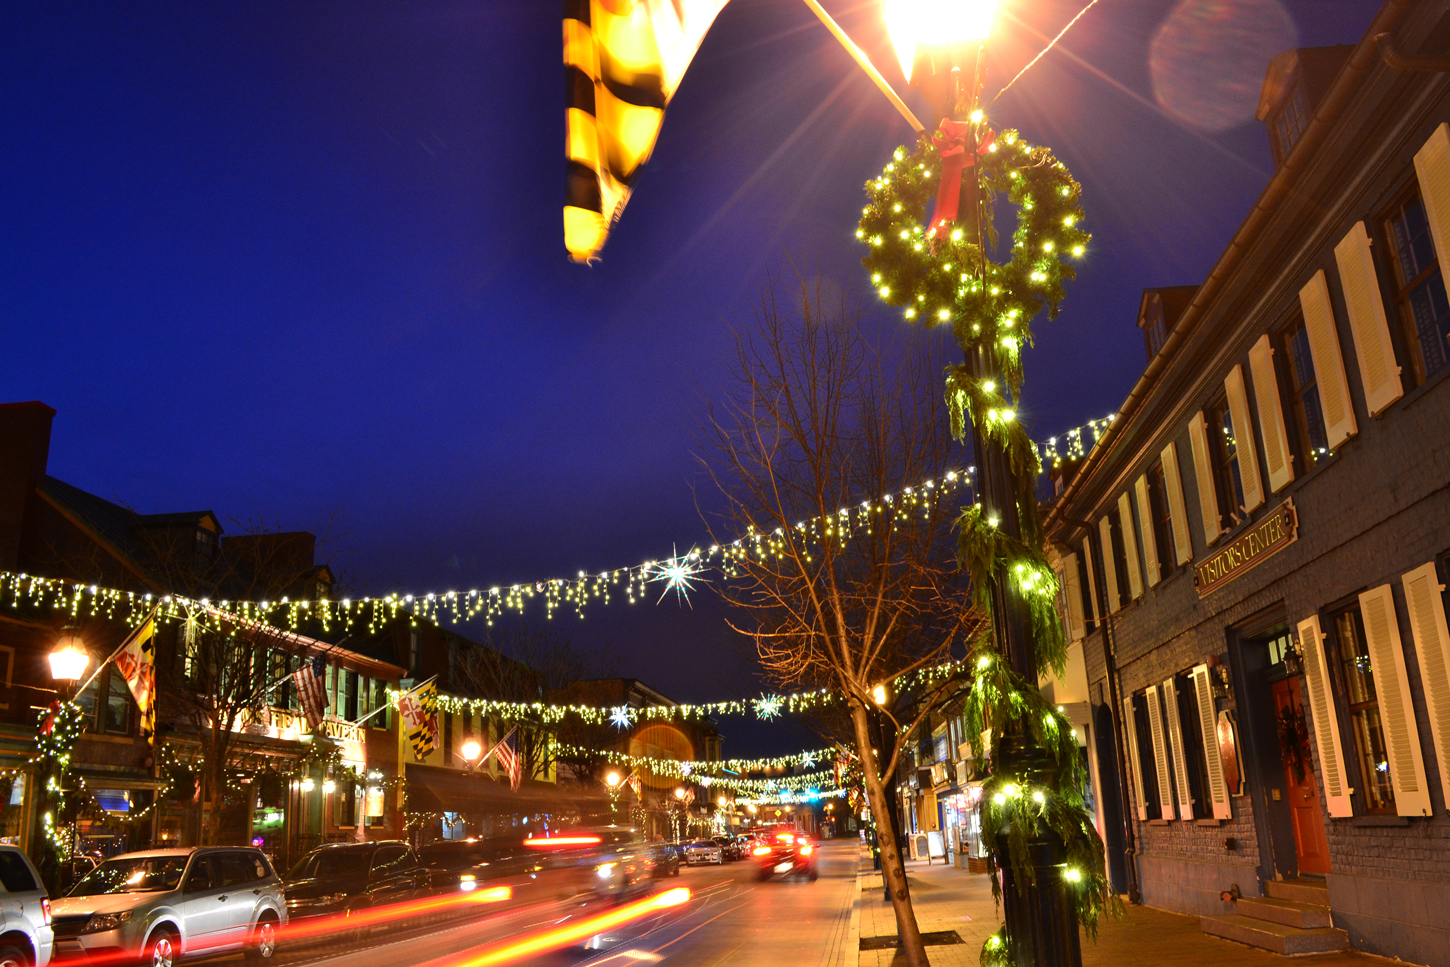 West Street Holiday Lighting - Annapolis, MD